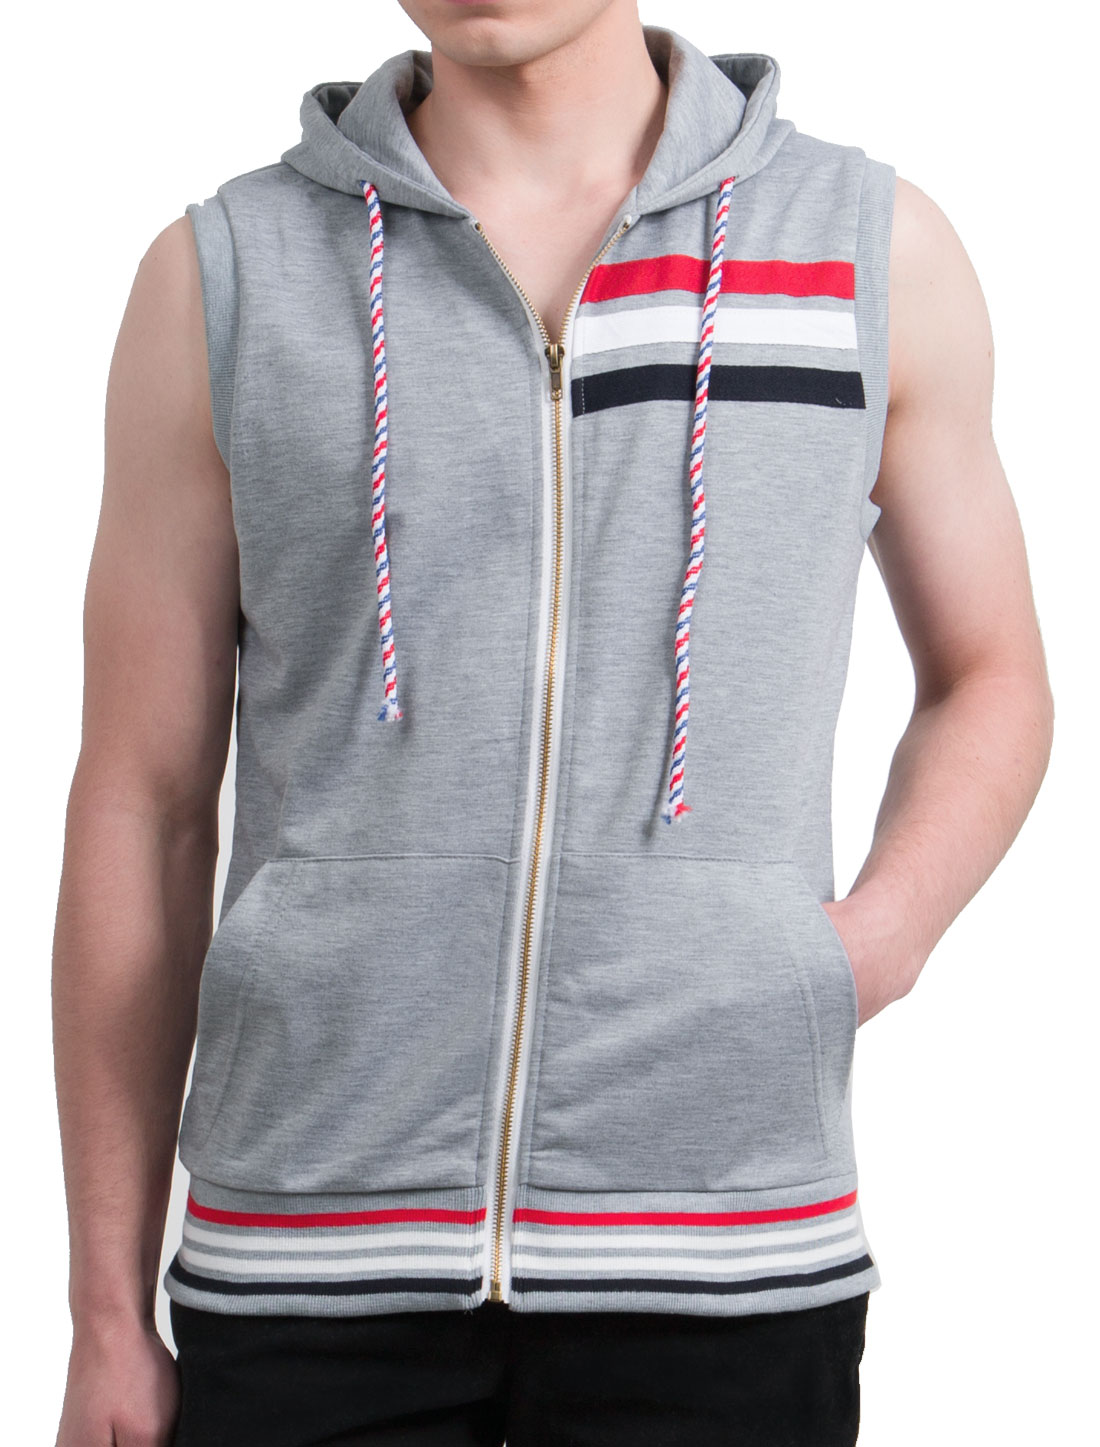 Men Ribbed Trim Sleeveless Double Front Pockets Casual Jacket Light Gray M